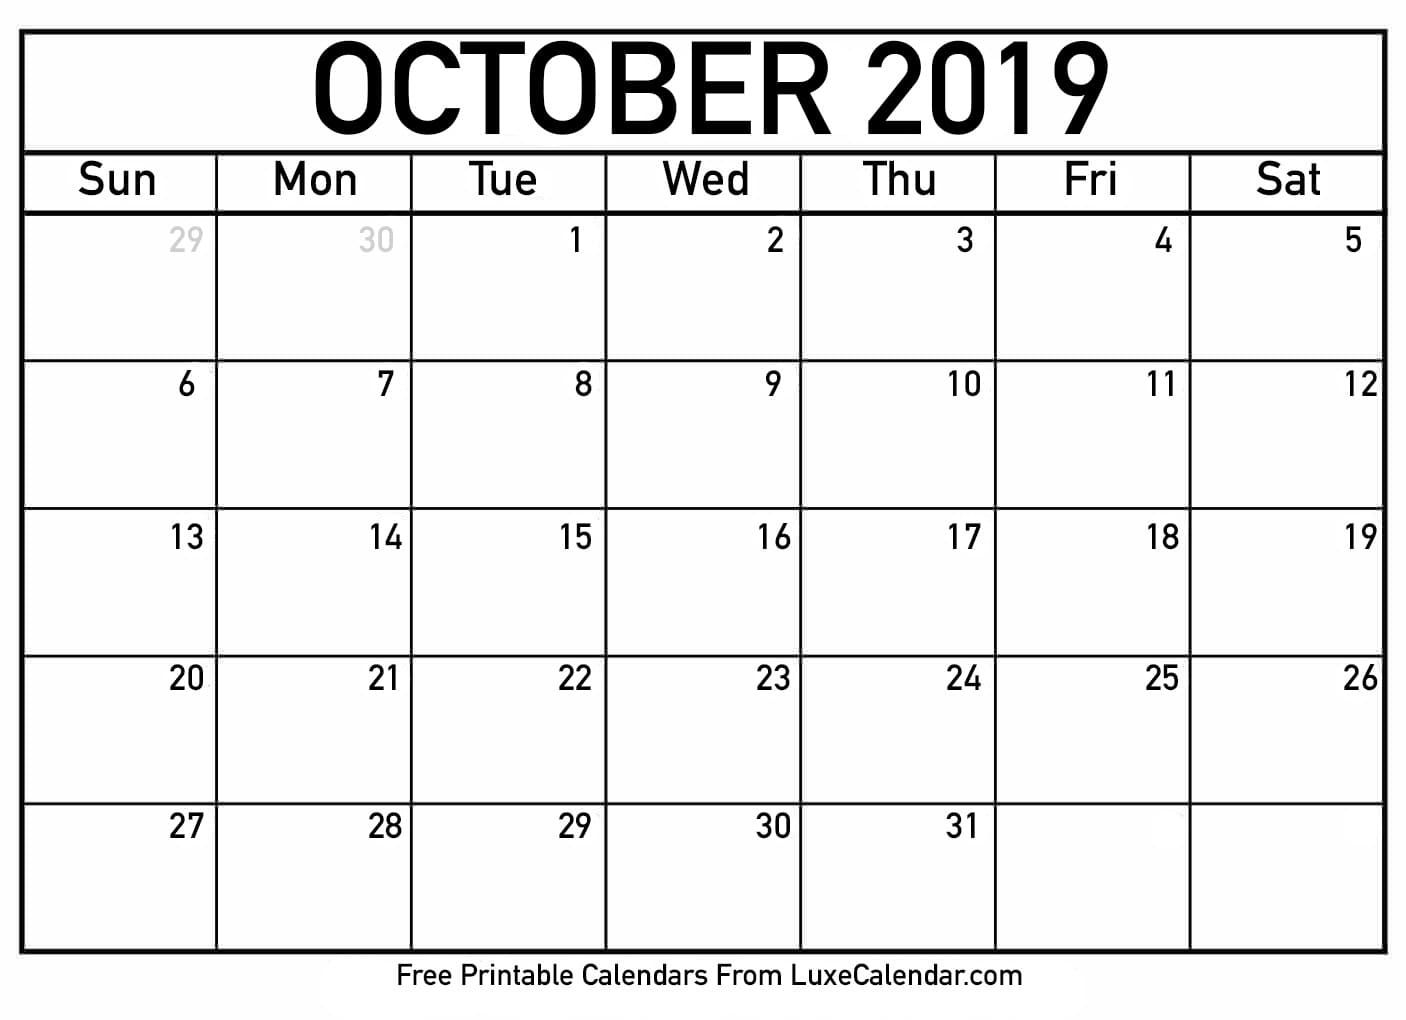 Print Free Calendars Without Downloading